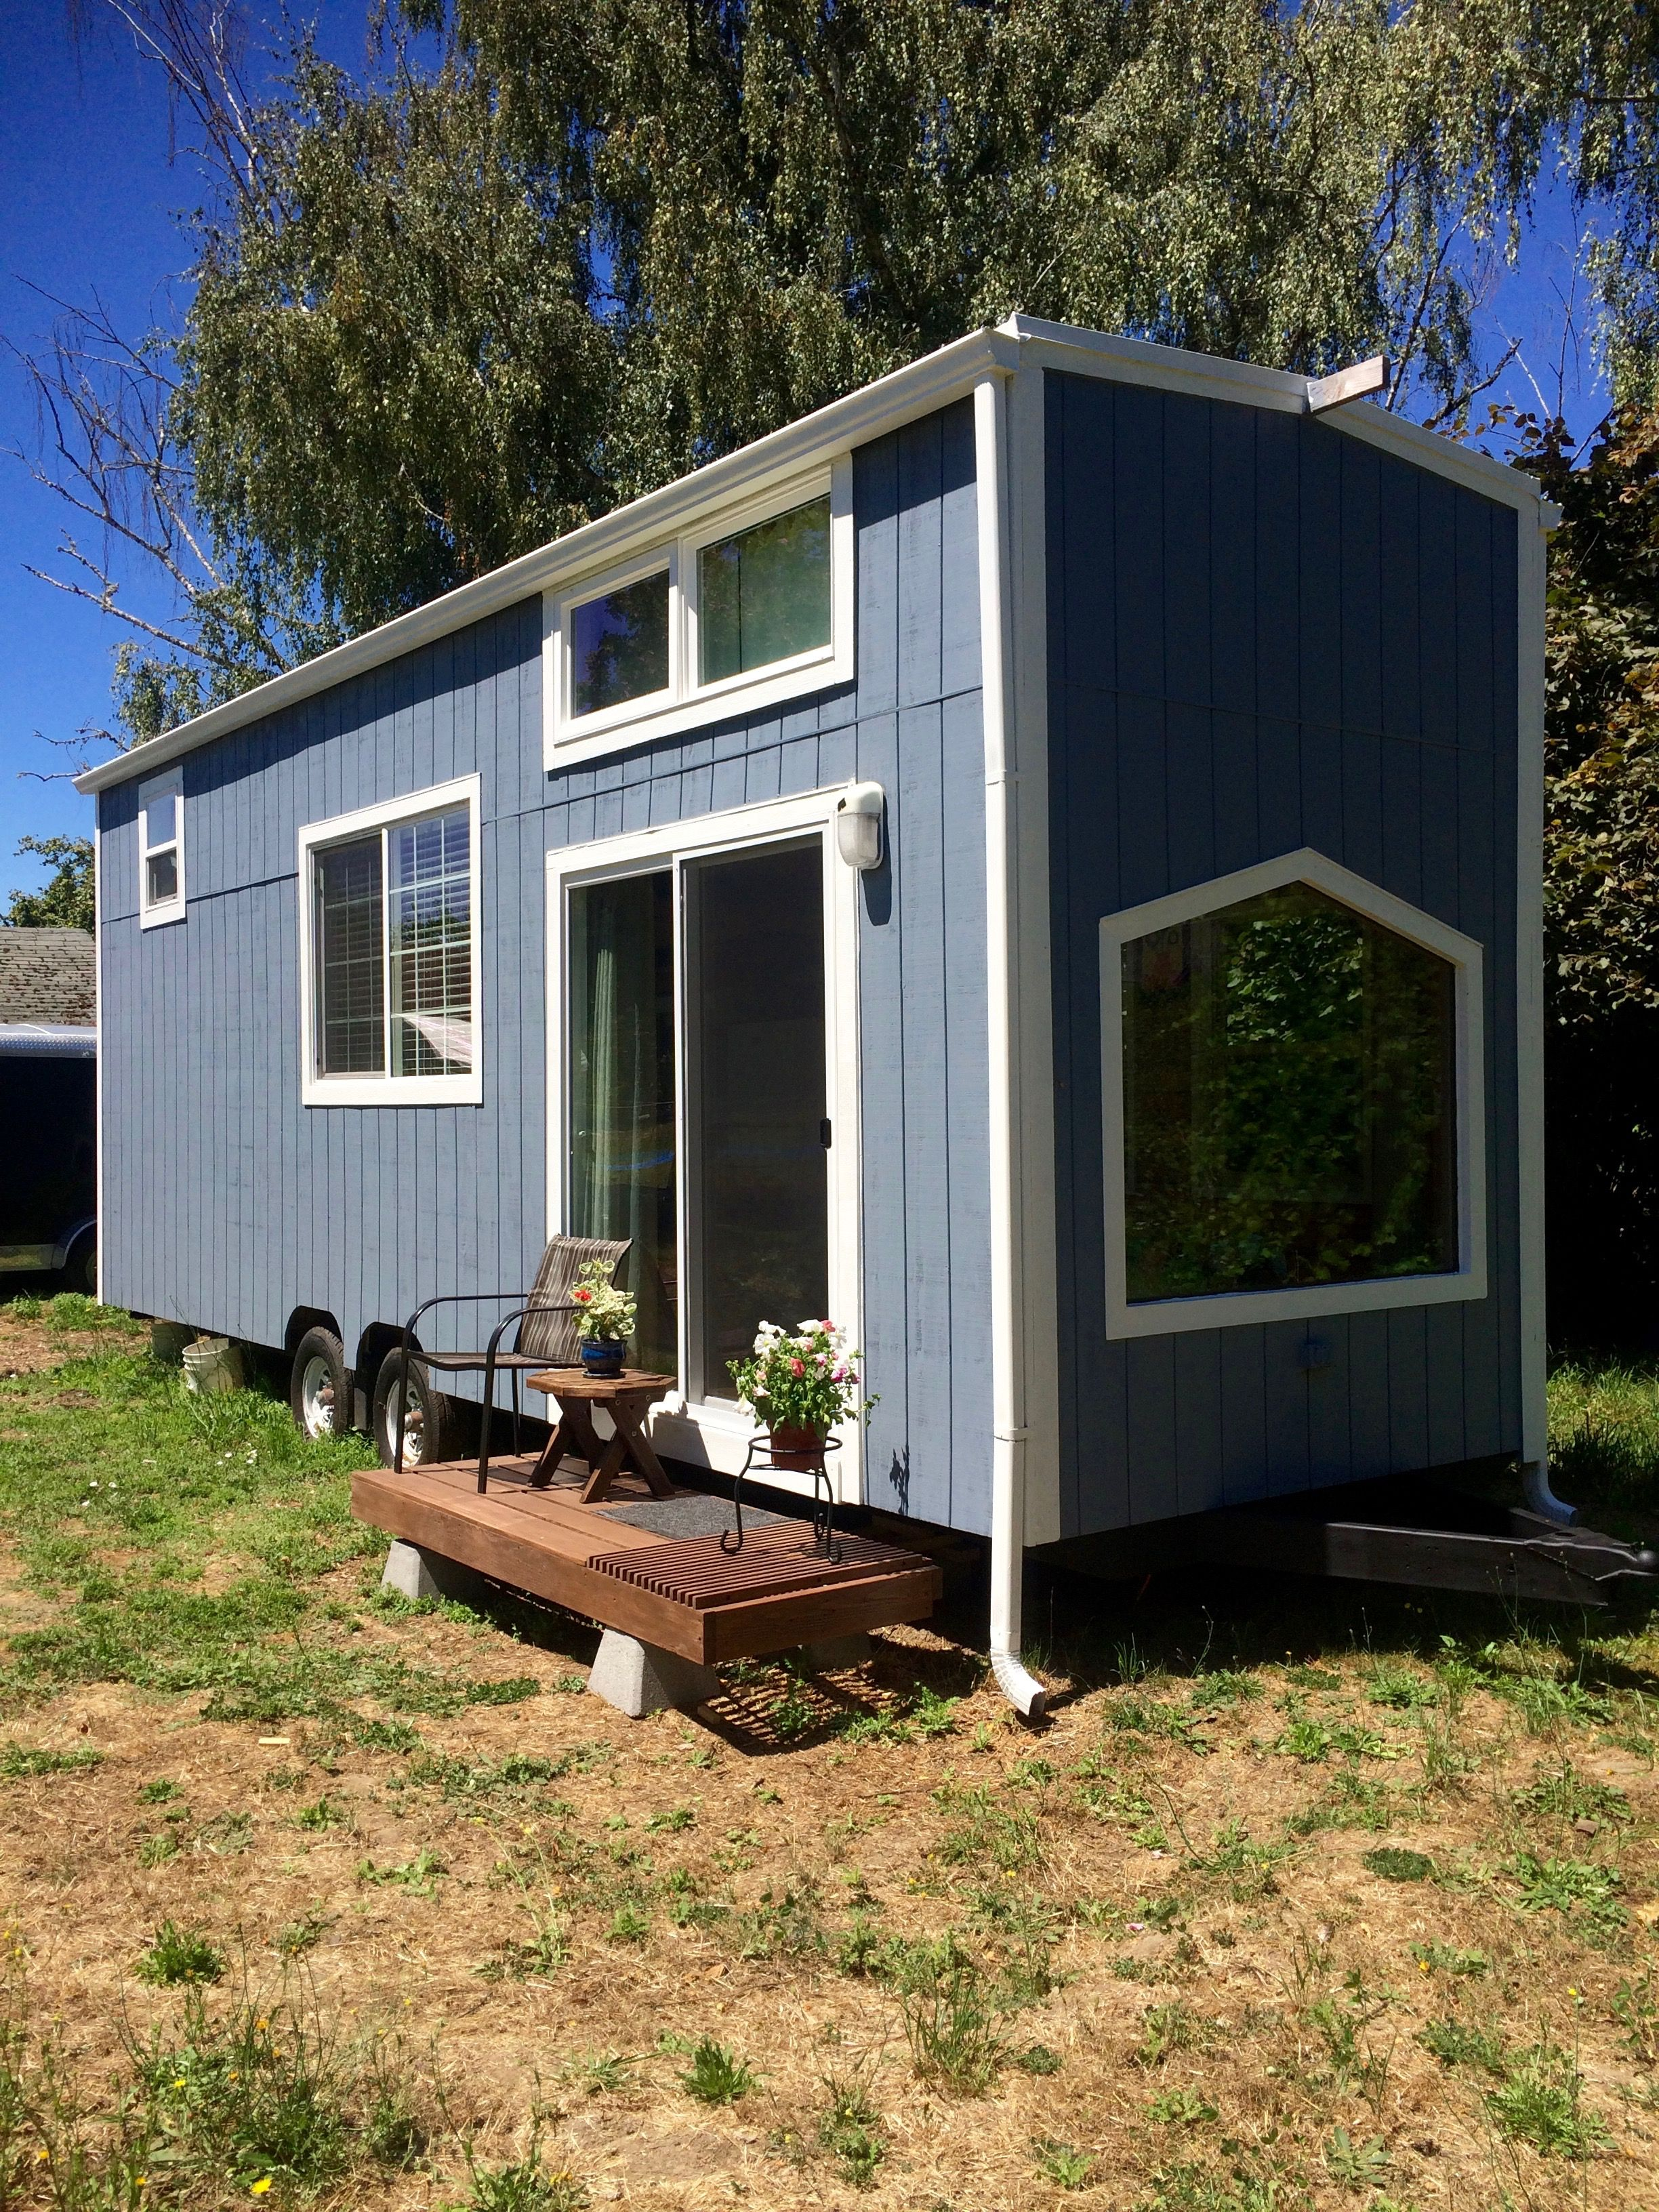 Tiny House Listings Tiny Houses For Sale And Rent Tiny Houses For Sale Tiny House Trailer House On Wheels